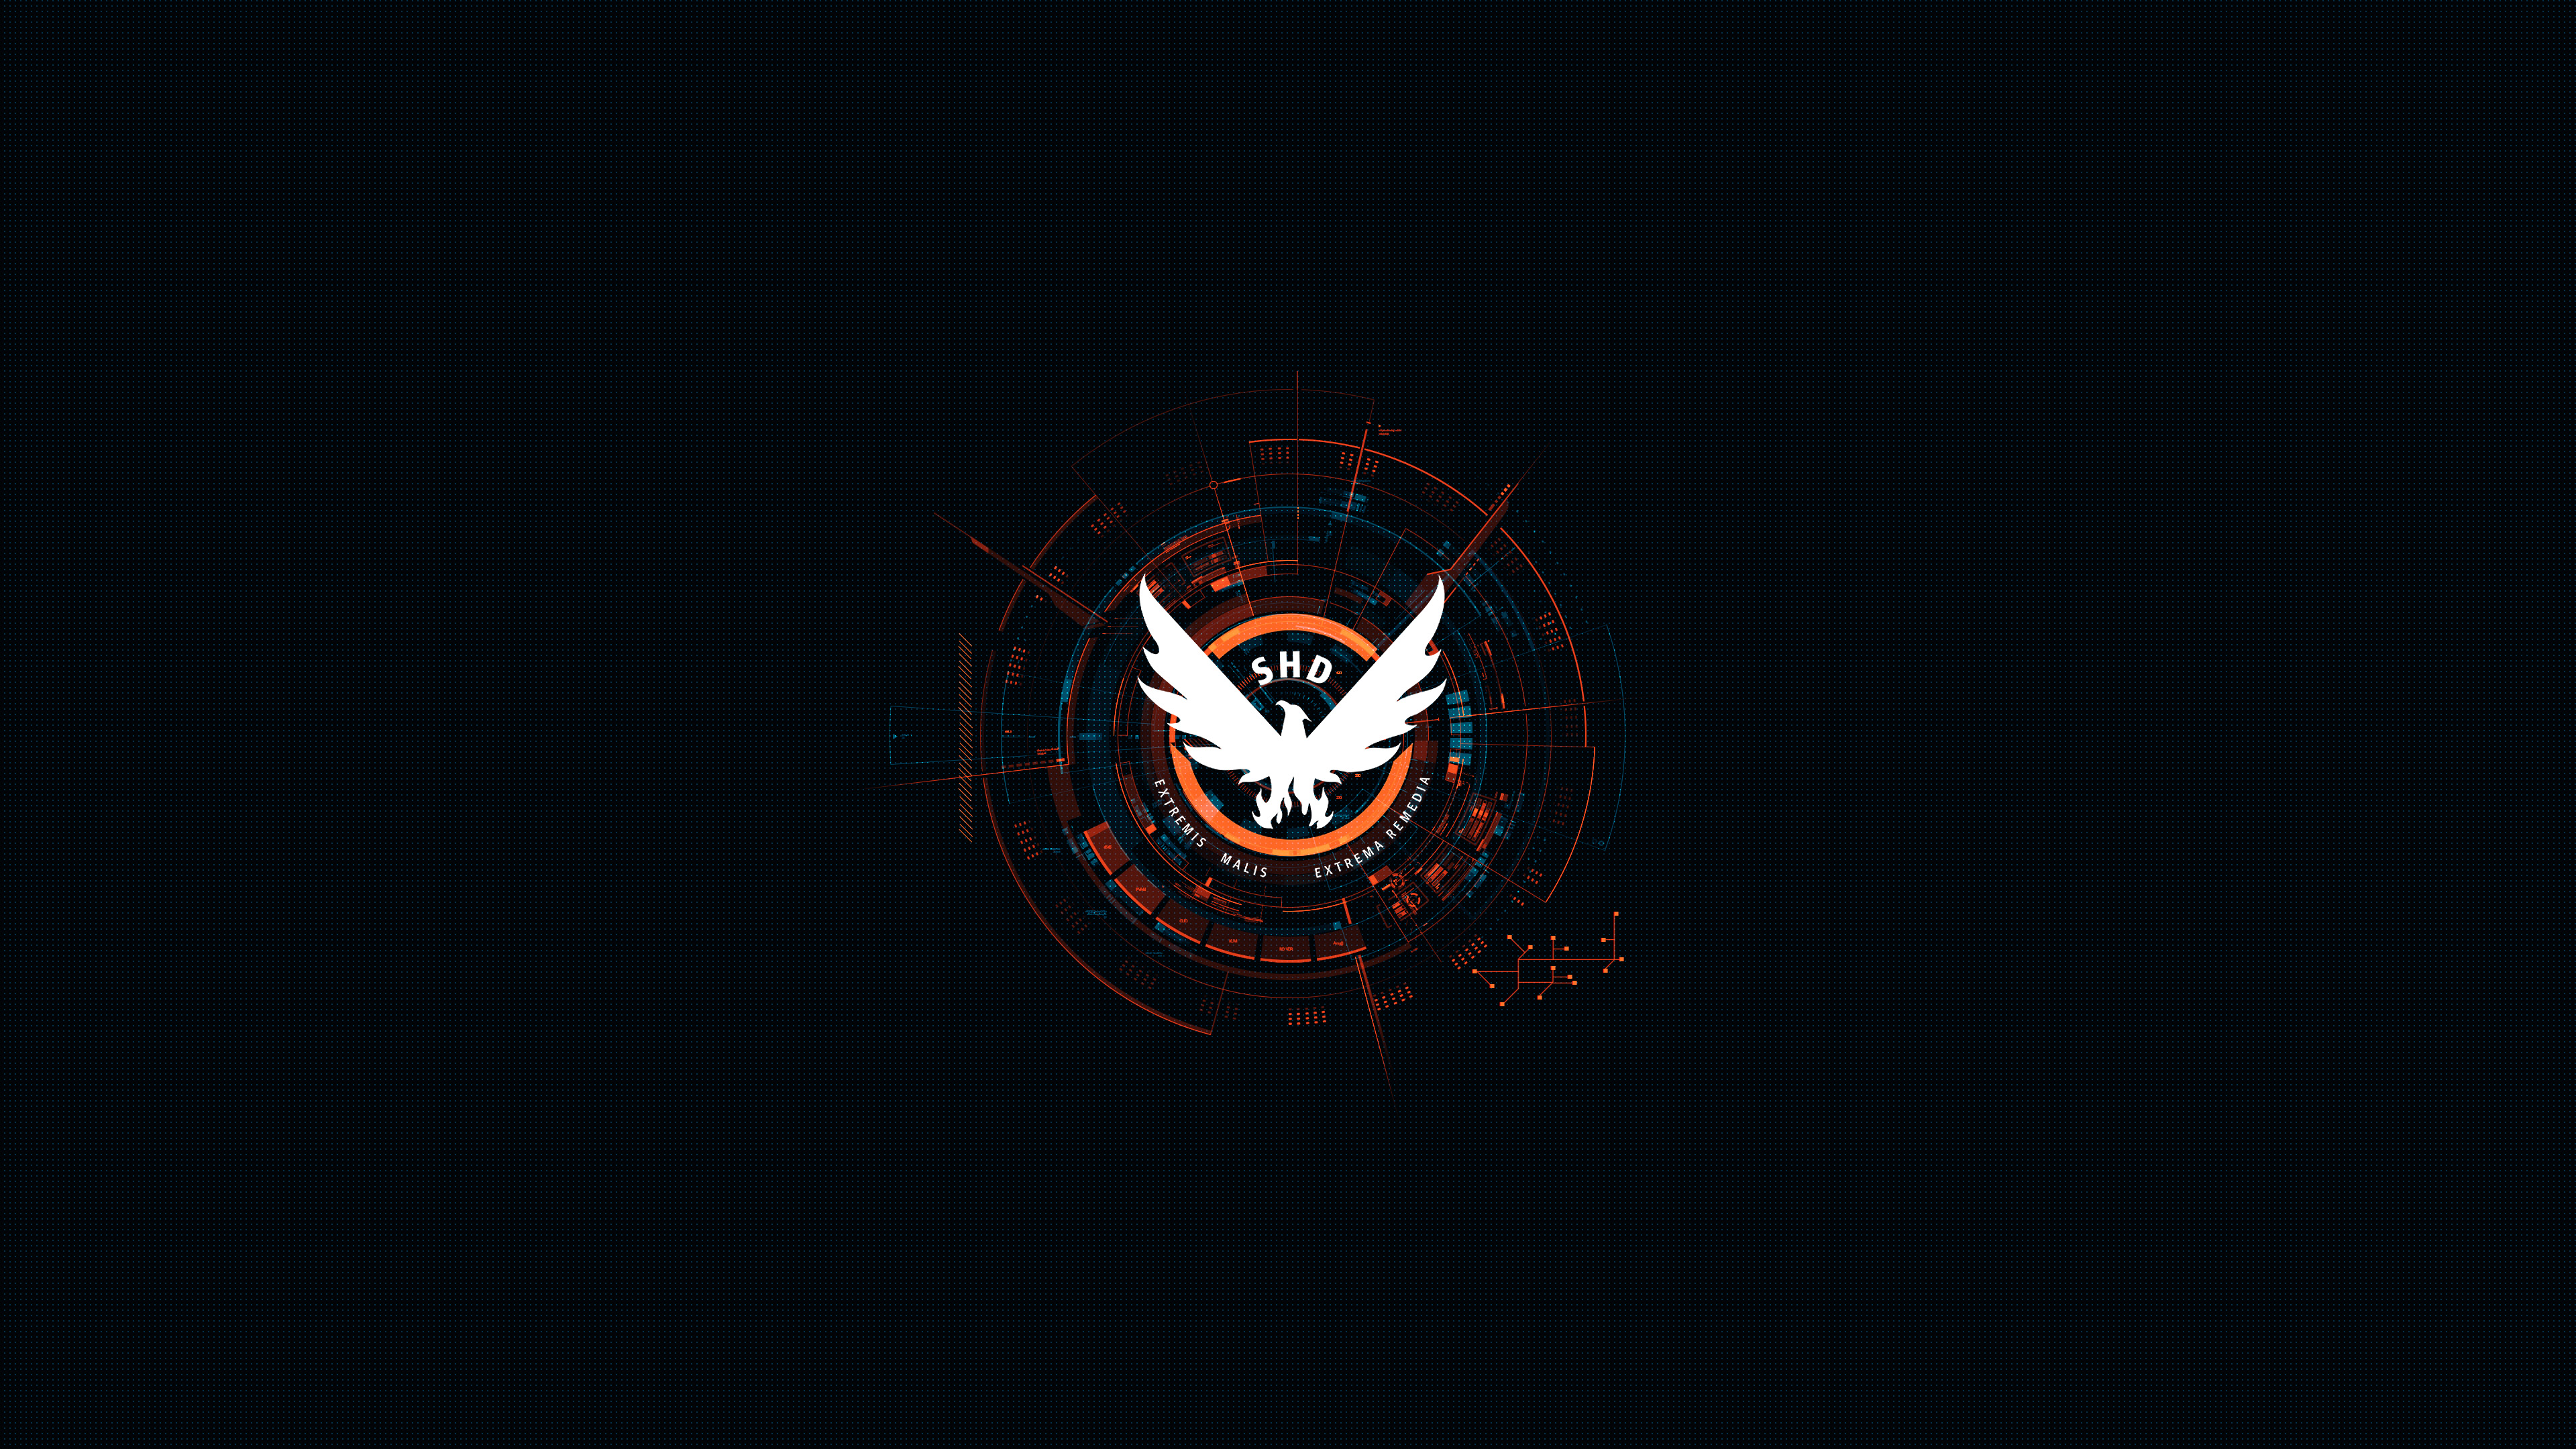 Faction Wallpapers 4k 1440p 1080p Thedivision